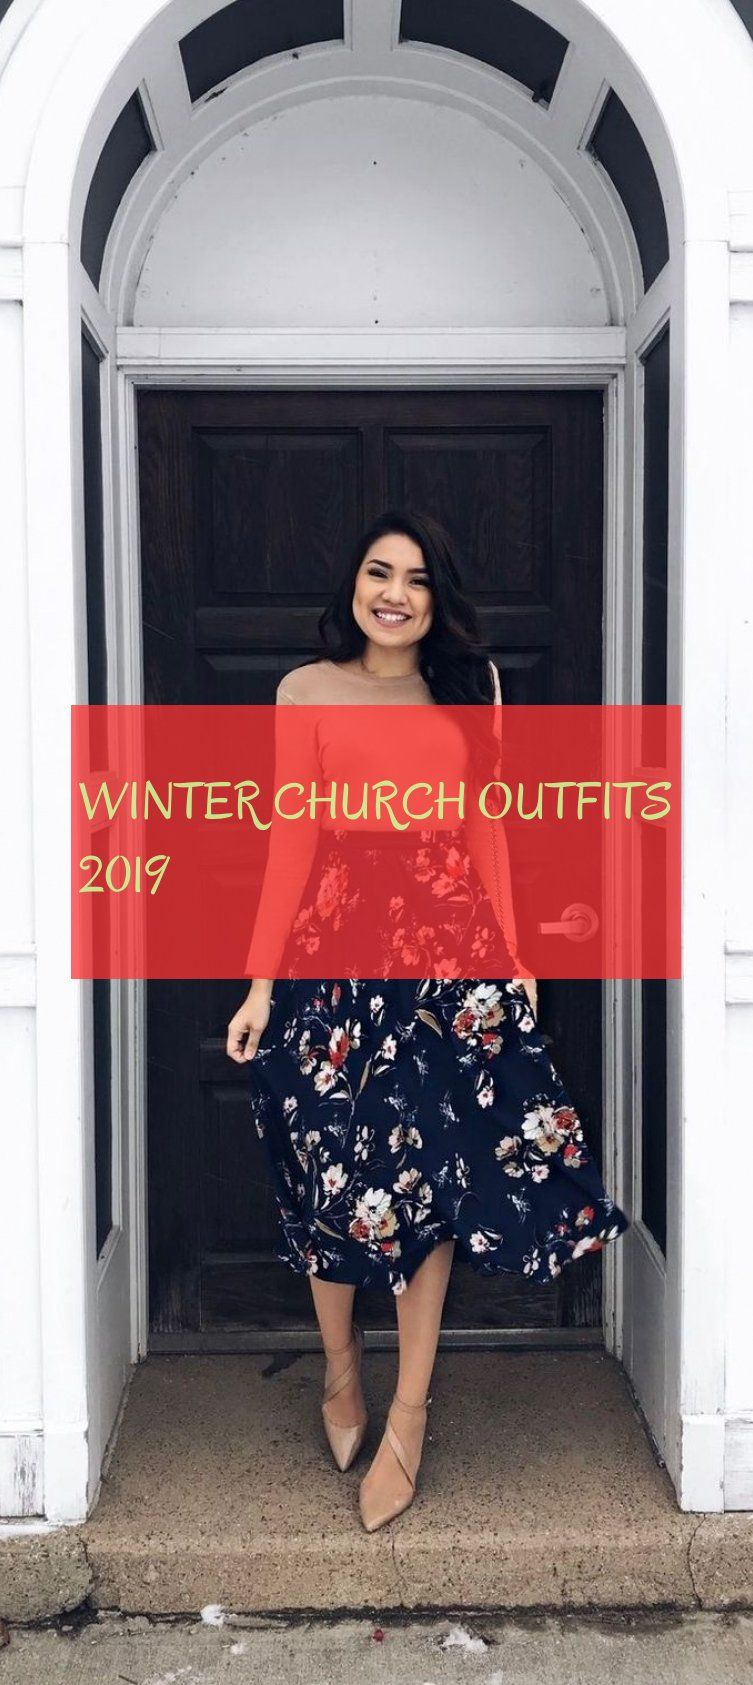 #2019outfitswinter #faldasoutfitswinter winter church outfits 2019 * cold weather outfits winter | botas outfits winter | outfits winter fashion #churchoutfitfall